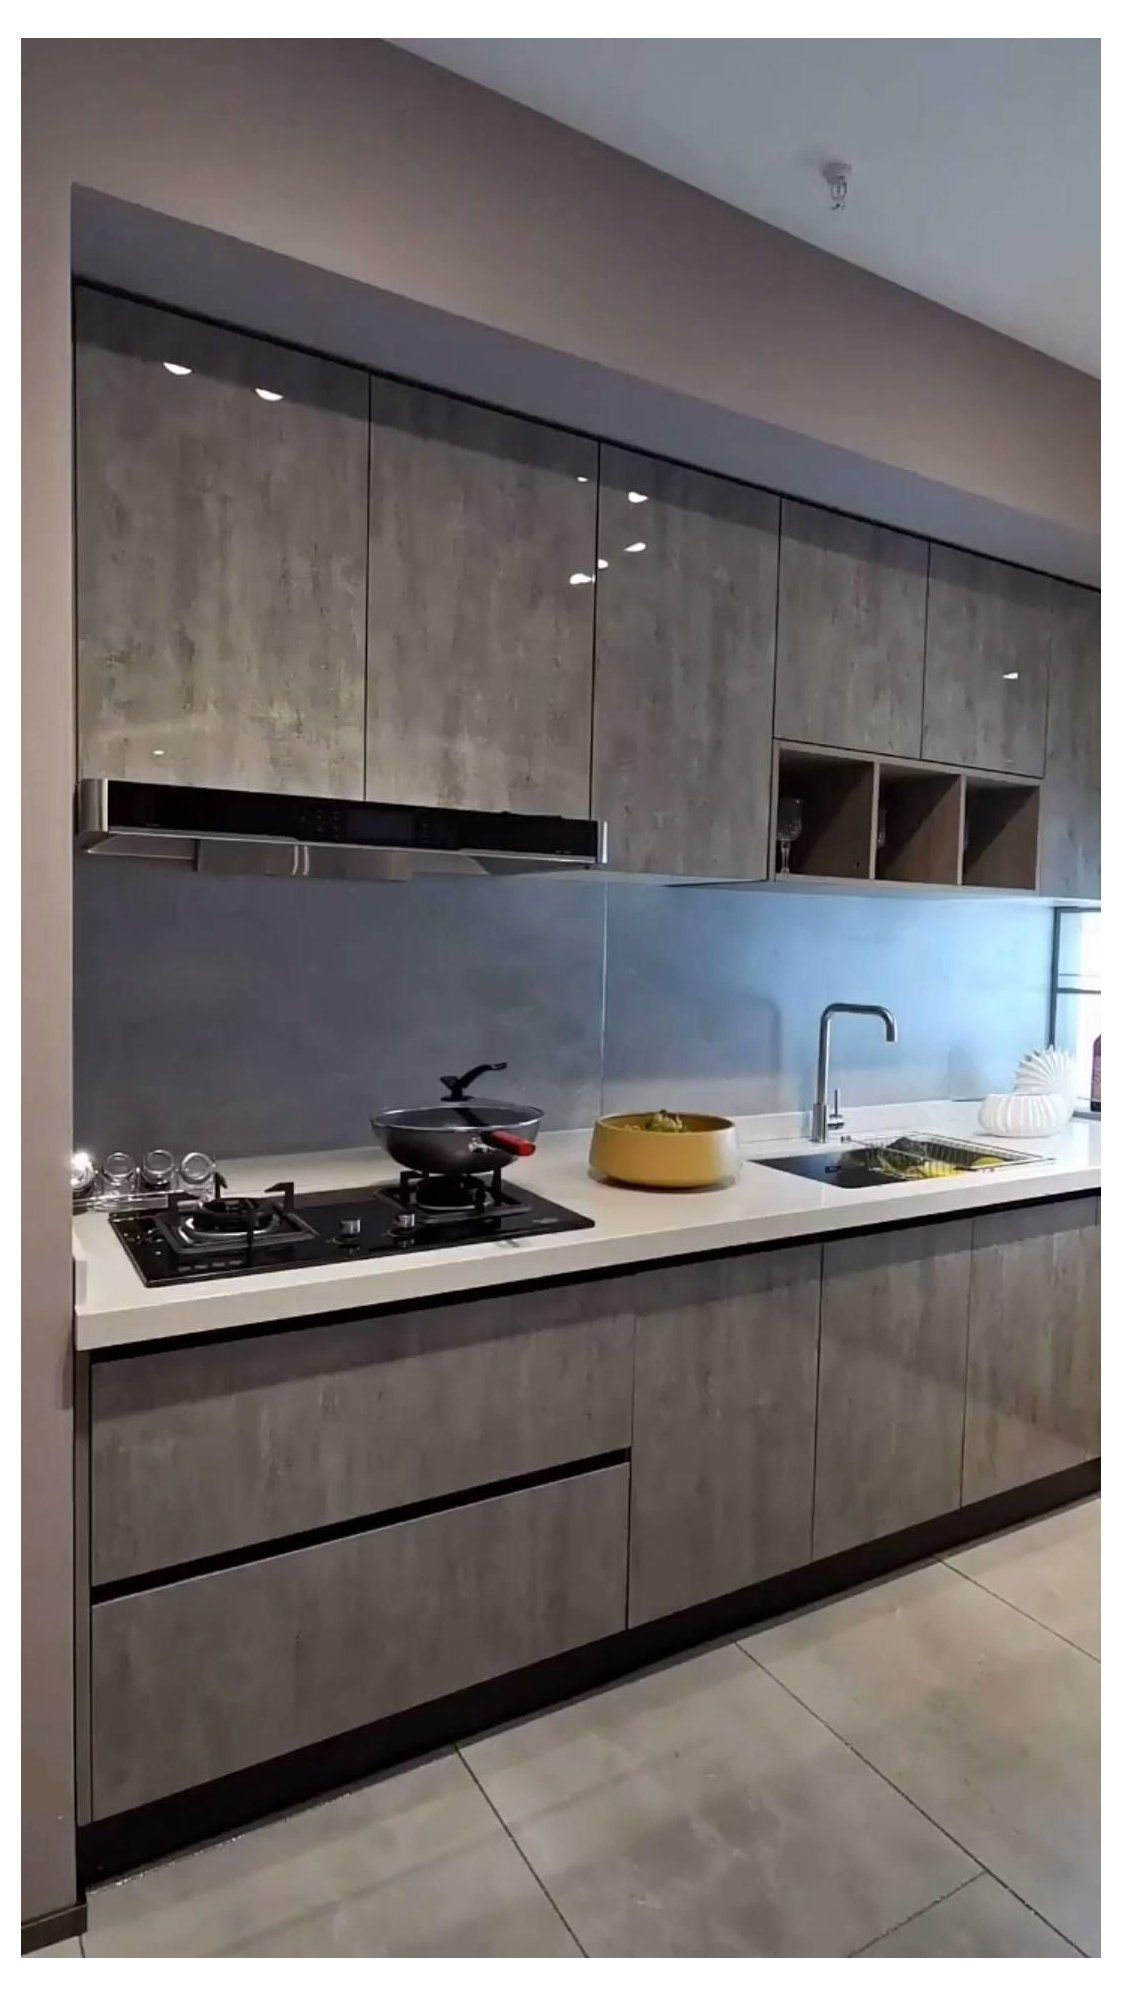 Kitchen Cabinets Kitchen Room Design Videos Mutfak Cami Guzelmis L Kulpsuz Mutfak In 2020 Kitchen Room Design Kitchen Furniture Design Kitchen Design Decor